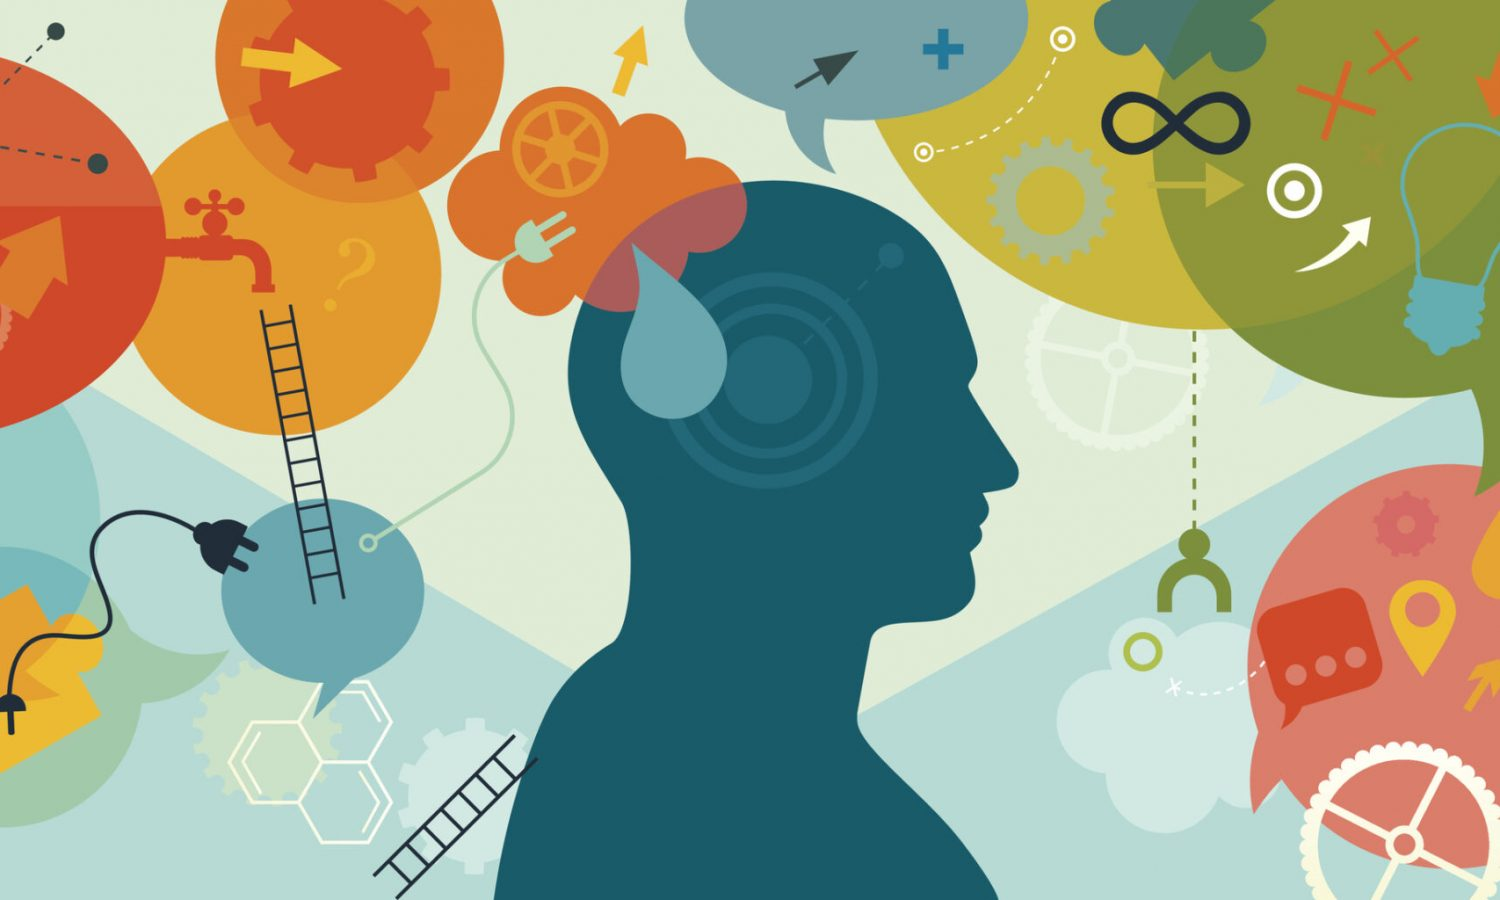 Horizontal vector illustration is showing a thinking person. The man silhouette is placed into the centre of the illustration. All around silhouette there are different elements which are showing different processes and approaches while solving a problem. We can see the electric bulb a metaphor/symbol for new idea; puzzles for looking the right parts; ladders for improvement; gears and wheels for thinking; speech bubbles for different thoughts/ideas; arrows for directions of thinking; question mark for questioning and self verification; connectors for integration, water pipe for knowledge ect.  We can also see the mathematical sign for eternity or infinity, in this case a metaphor for something that seems like it will go on for forever. Illustration is vibrant and eye catching and also nicely layered.